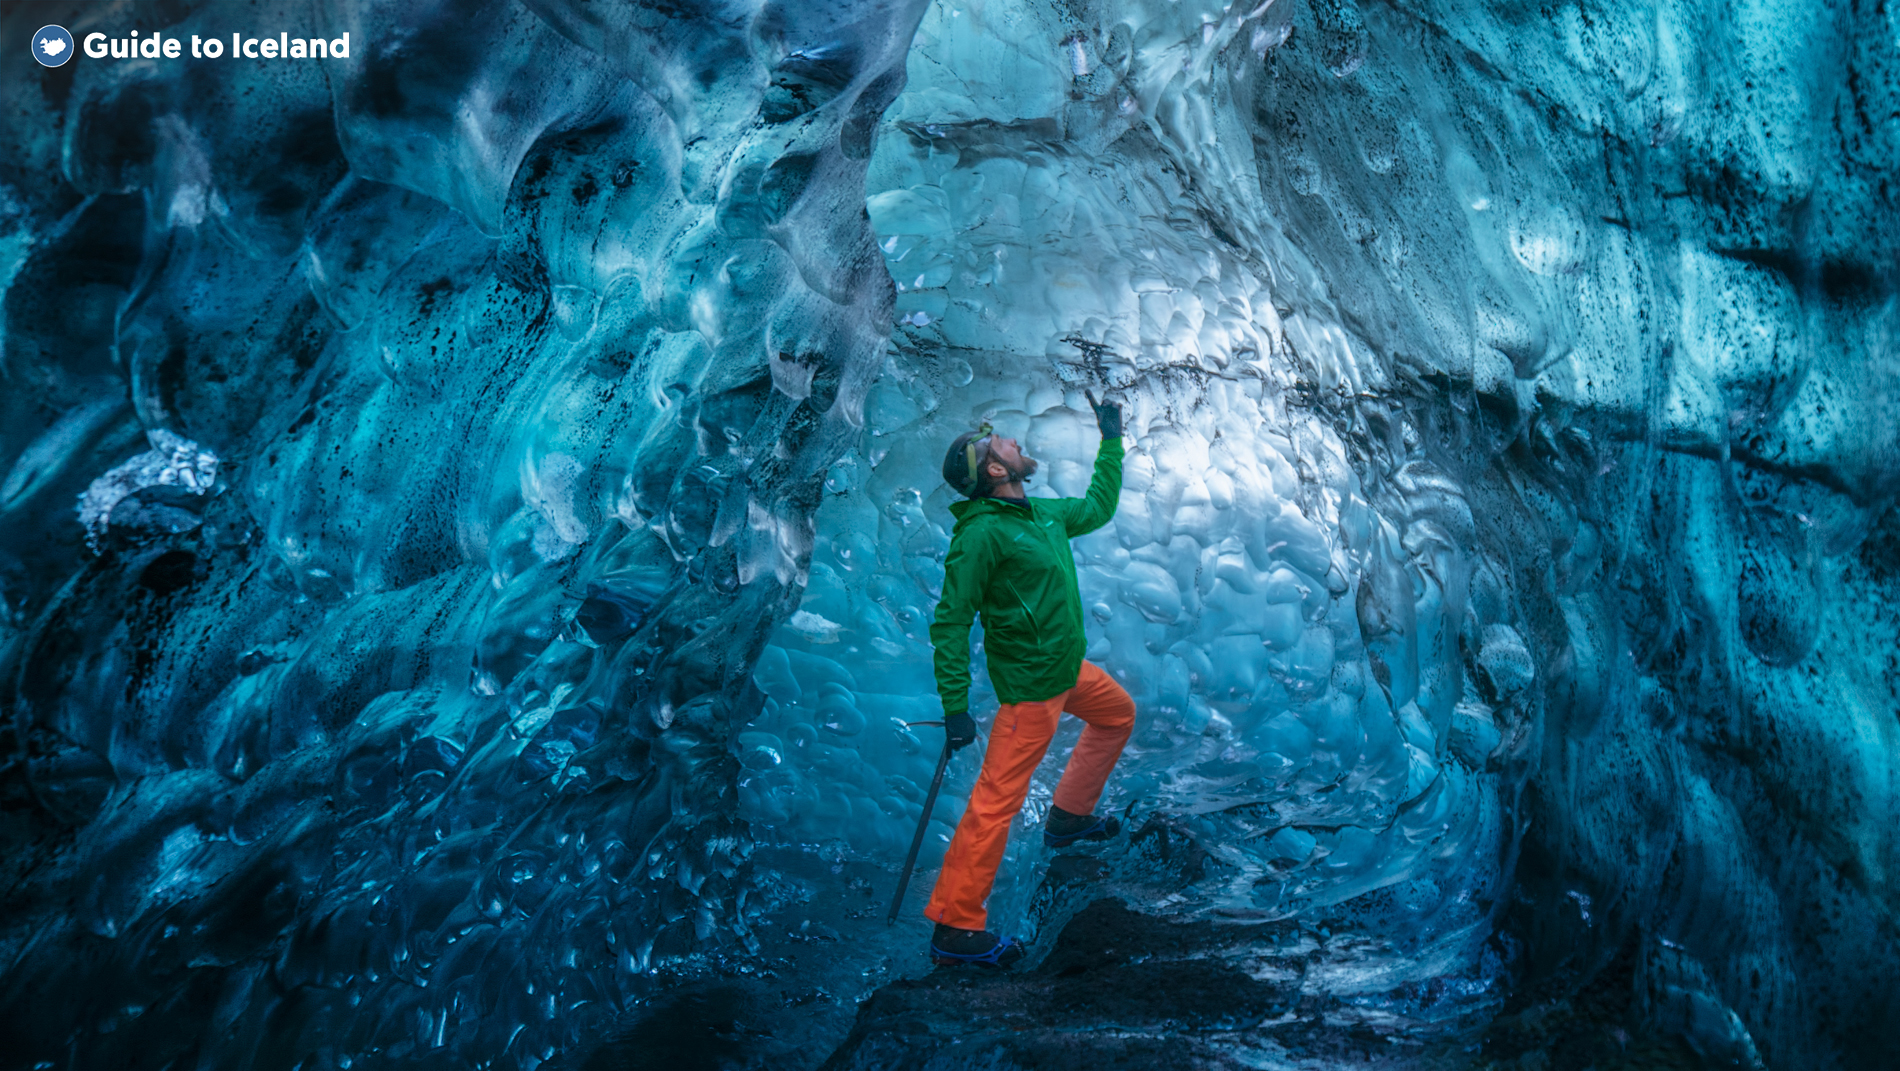 A visitor marvelling at the colours from the inside of an ice cave in Iceland.